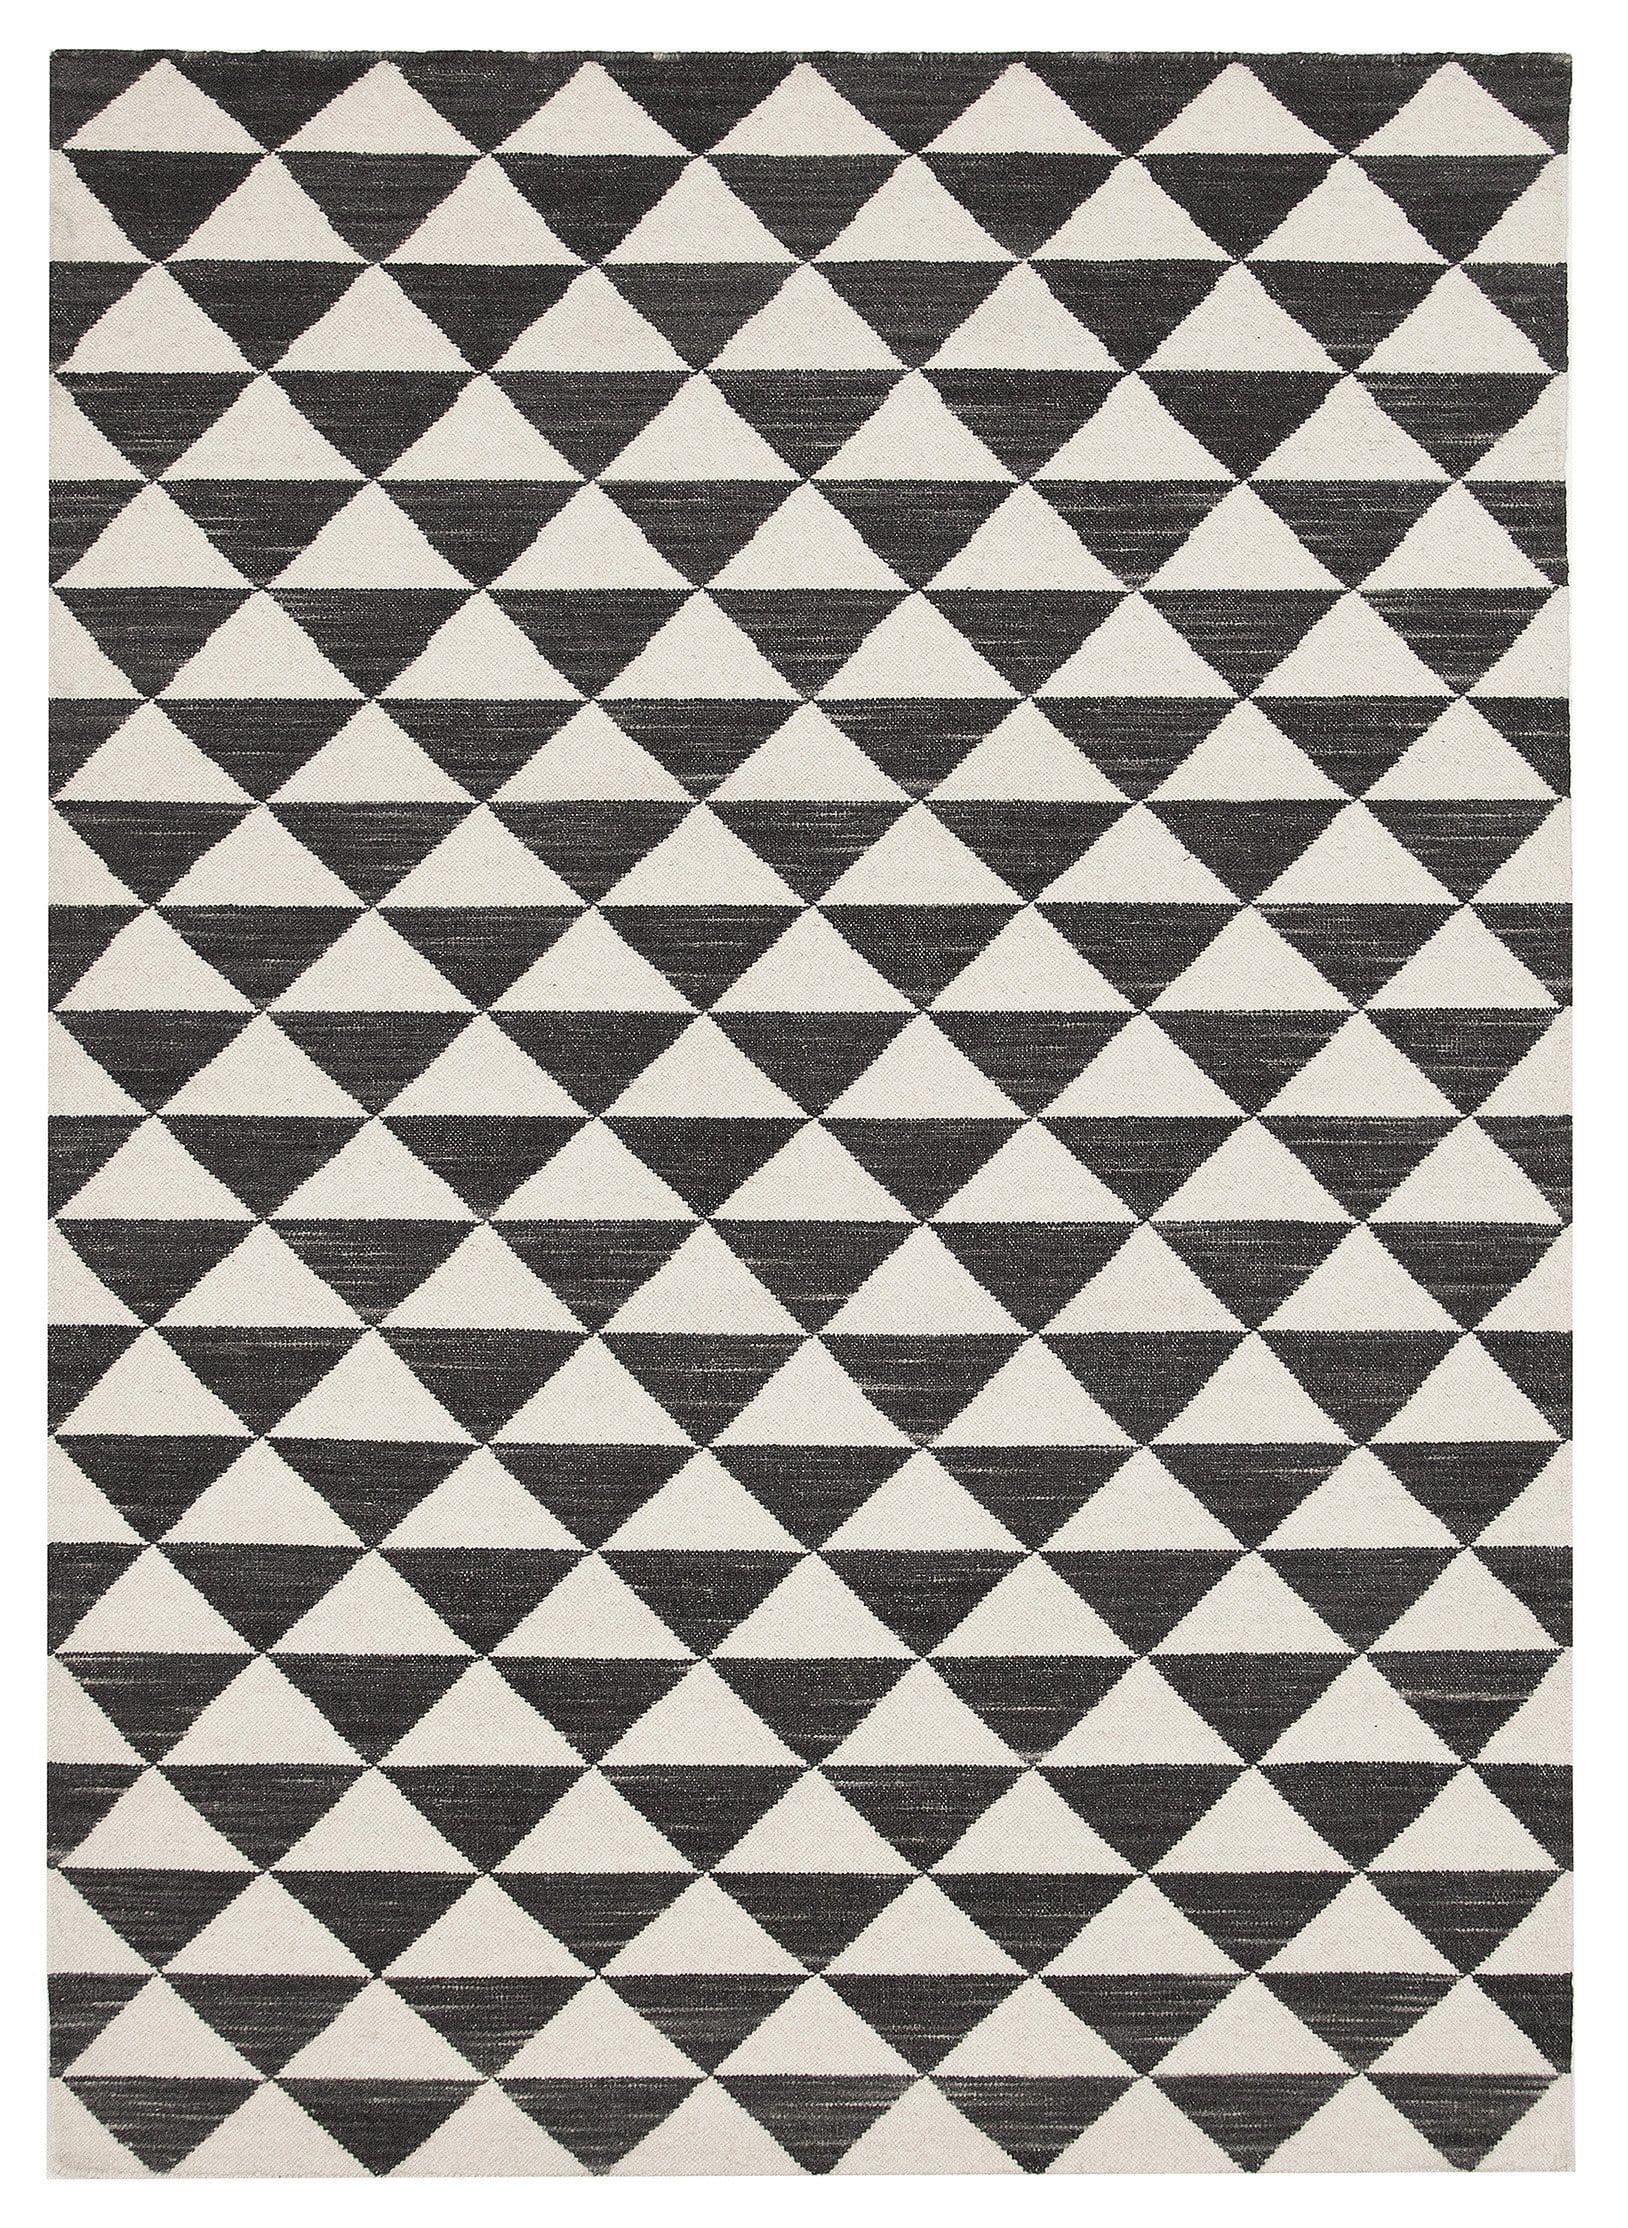 Favorite Black & White Rugs SR27